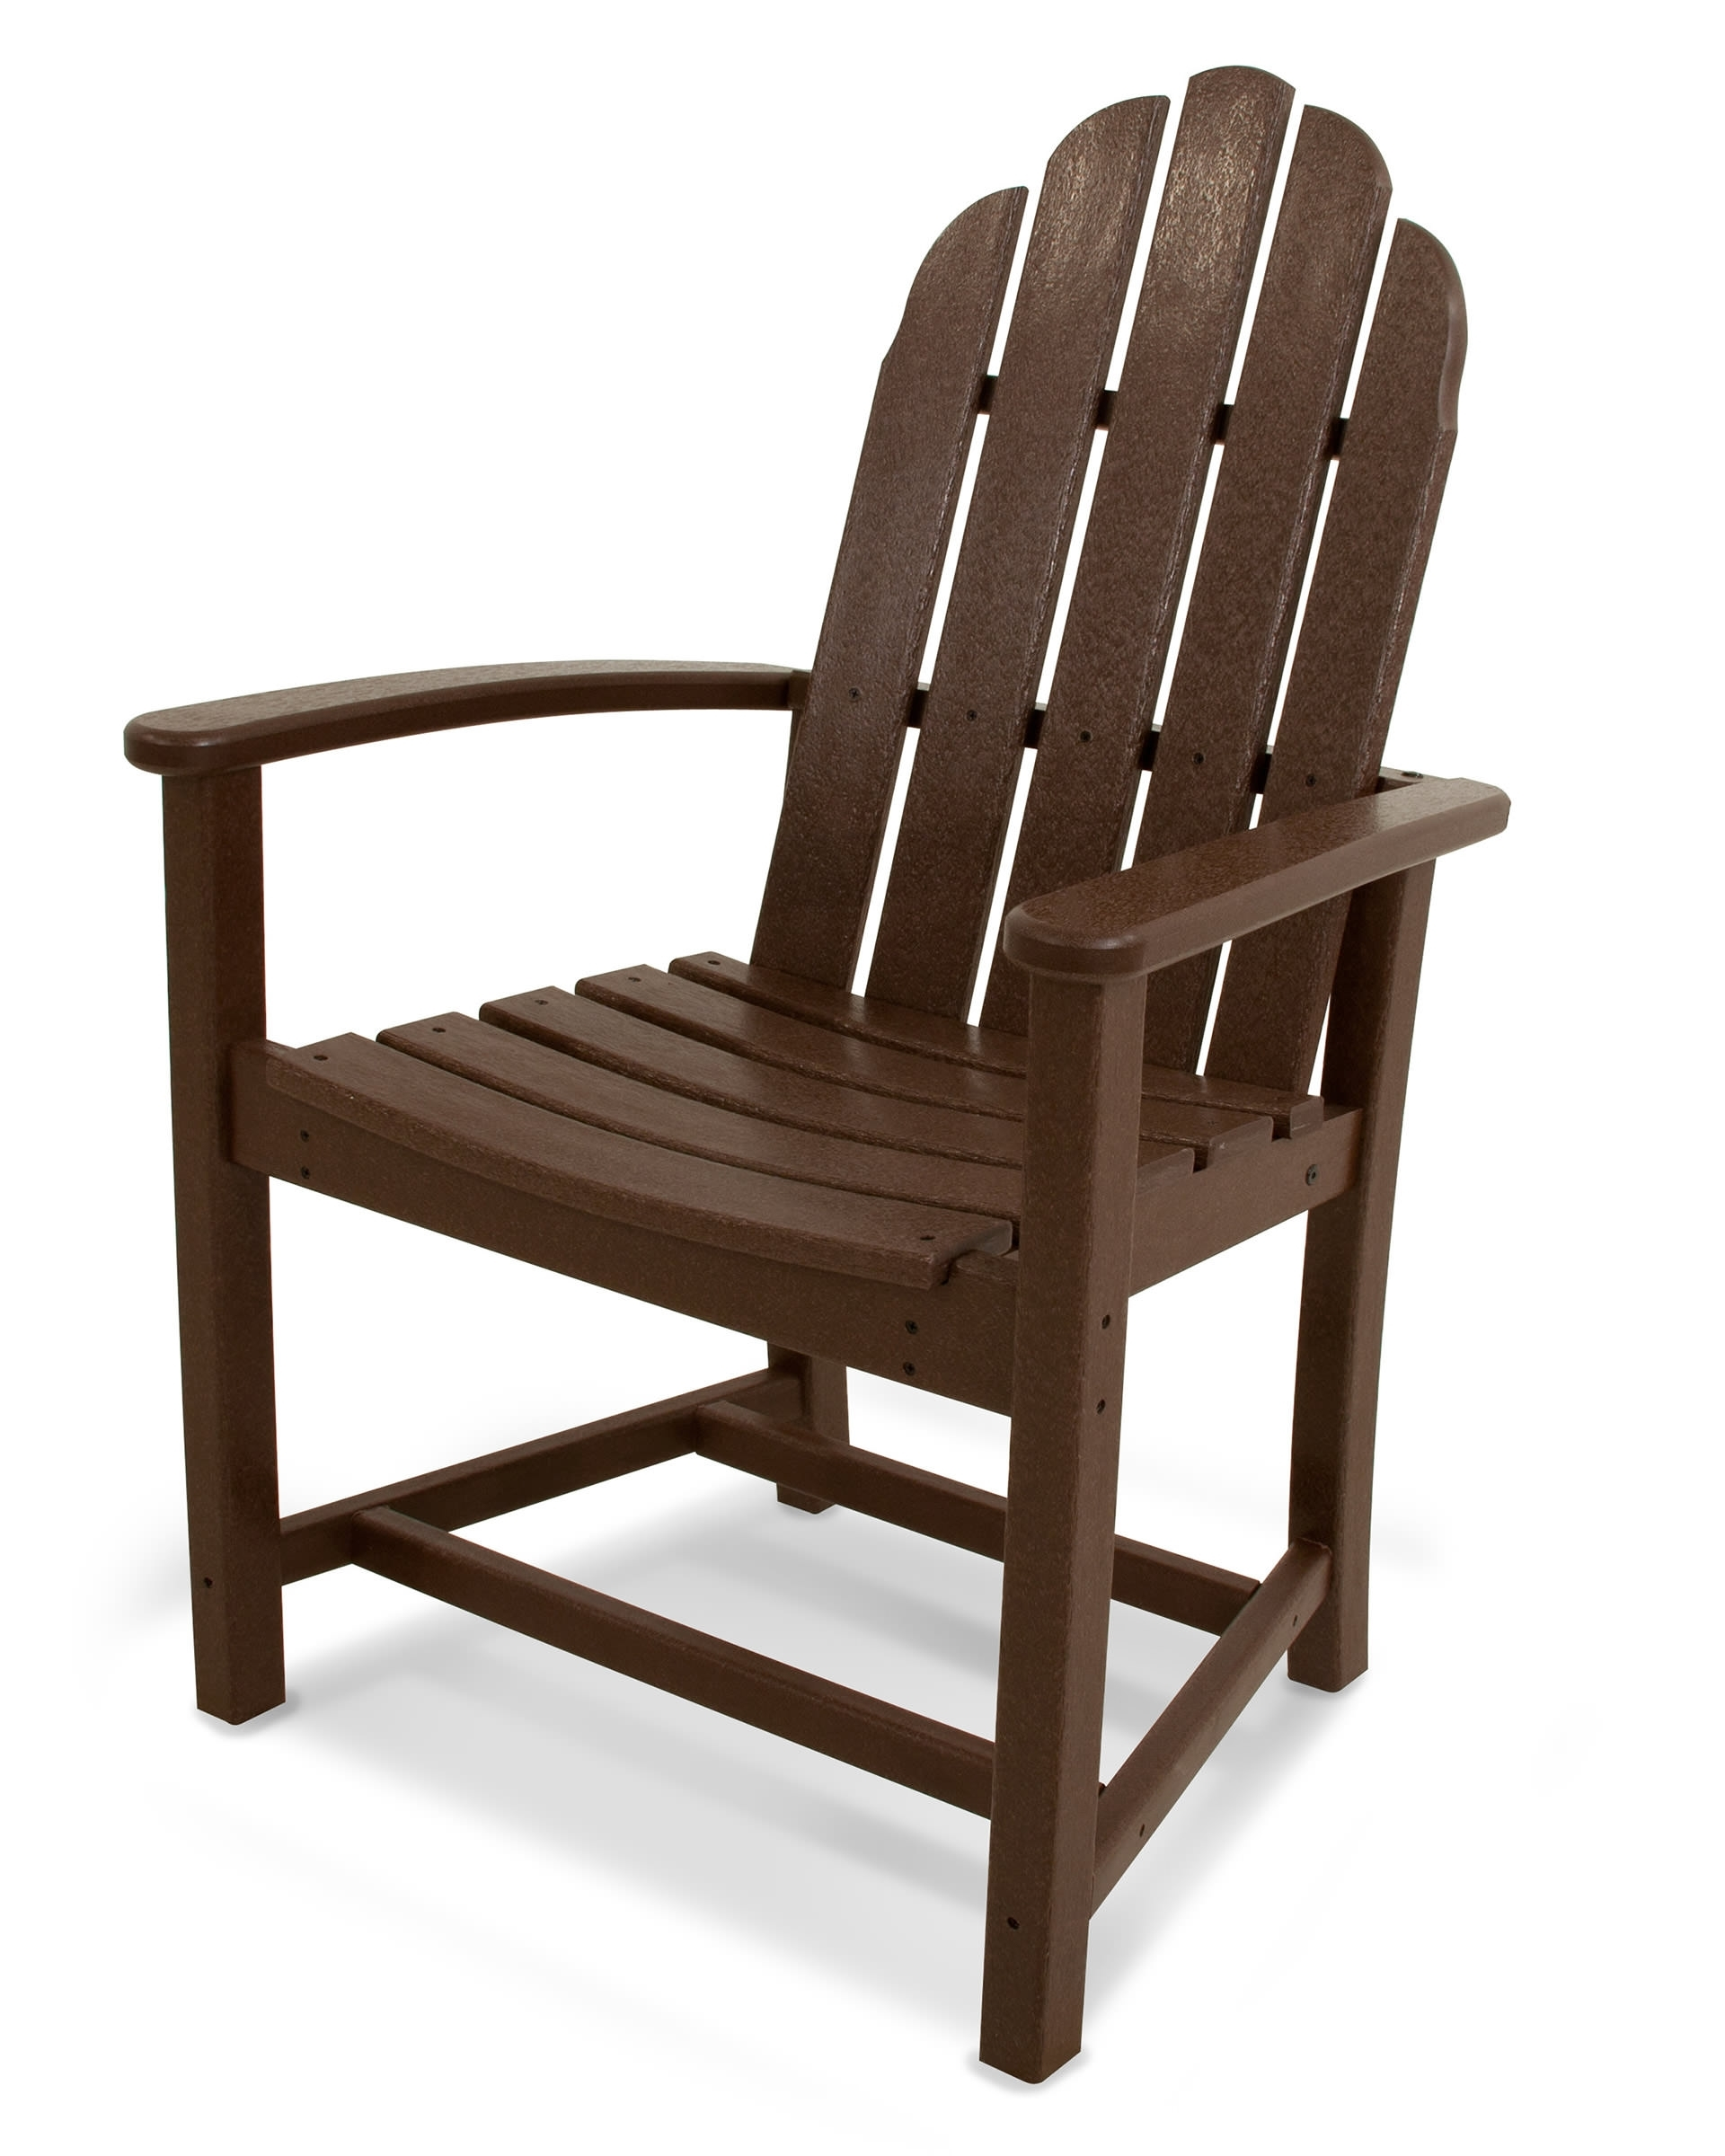 Plastic Patio Rocking Chairs Inside 2019 Polywood Classic Adirondack 7 Piece Dining Set – Classic Adirondack (View 7 of 20)